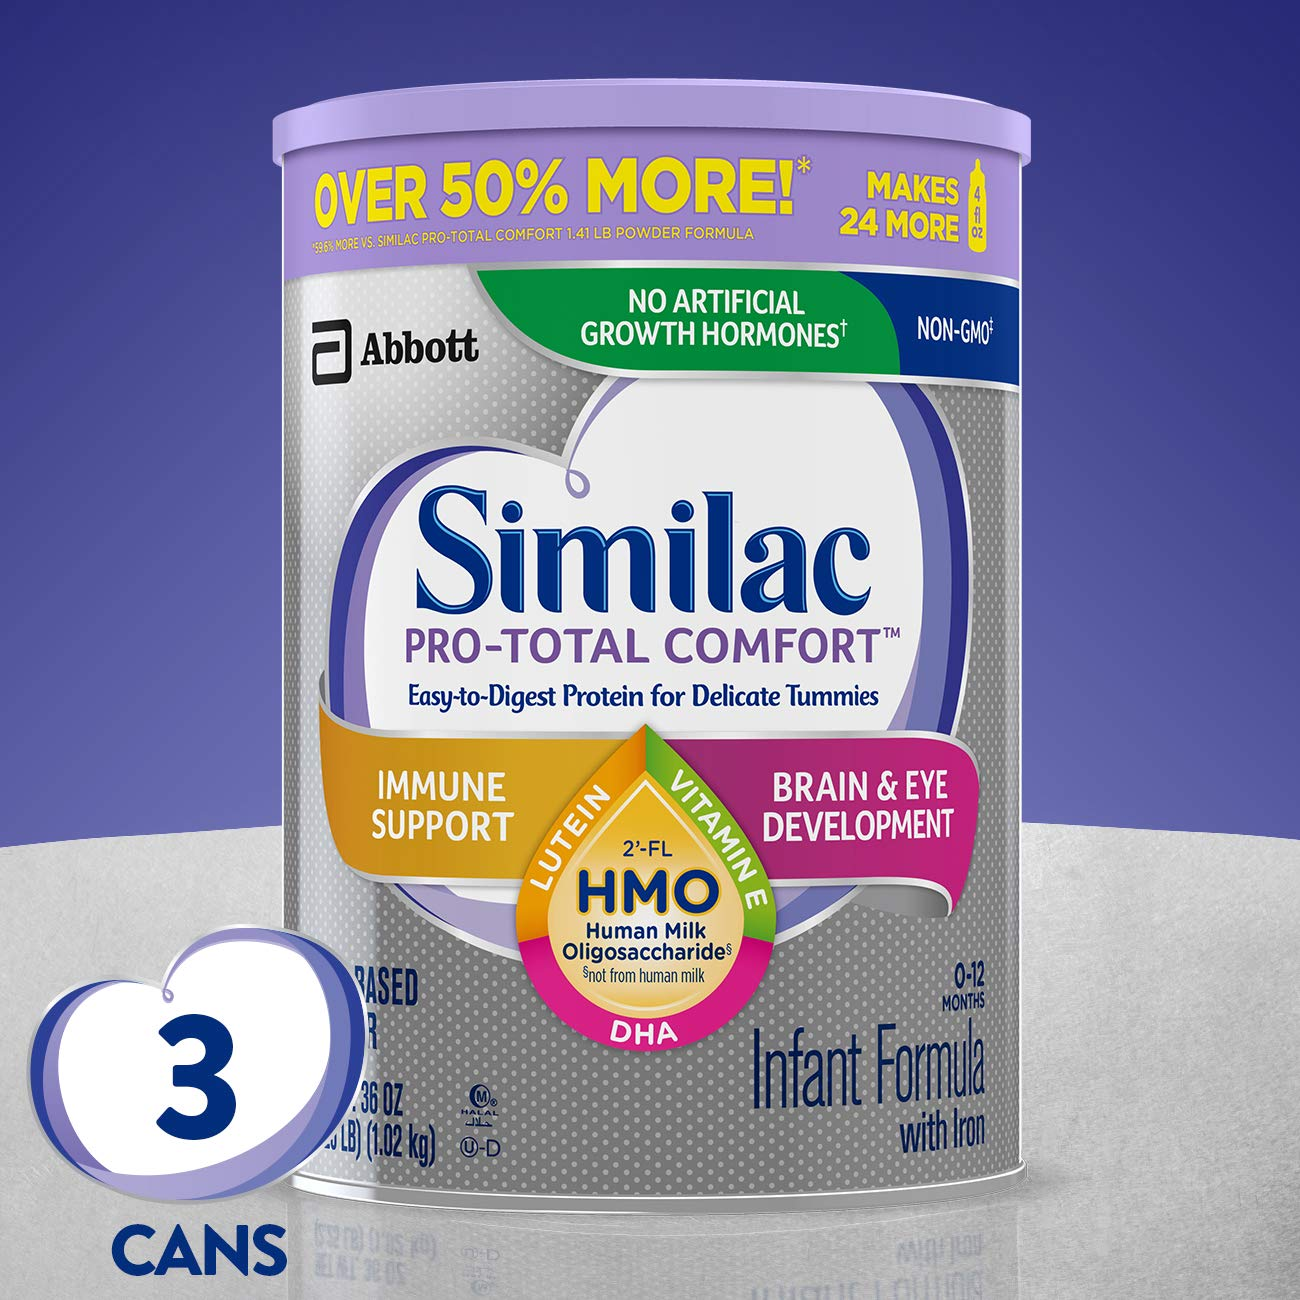 Similac Pro-Total Comfort image